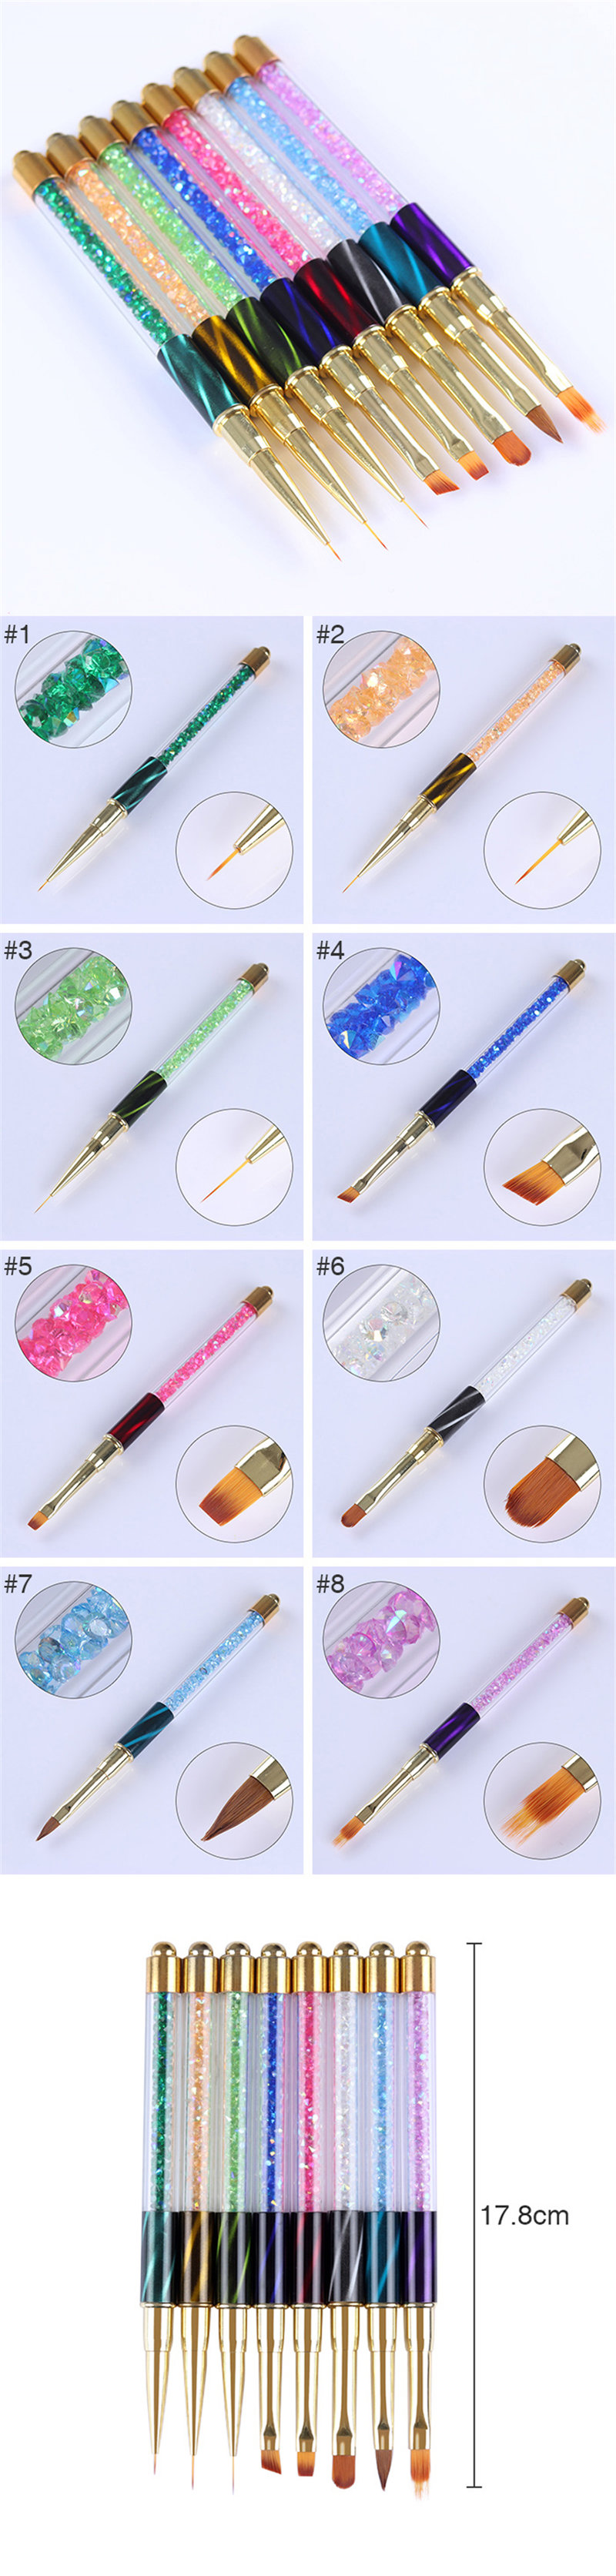 1Pc Nail Art Brush With Aluminium Alloy Handle For drawing lines And Fine Details Flower Patterns Brush 6